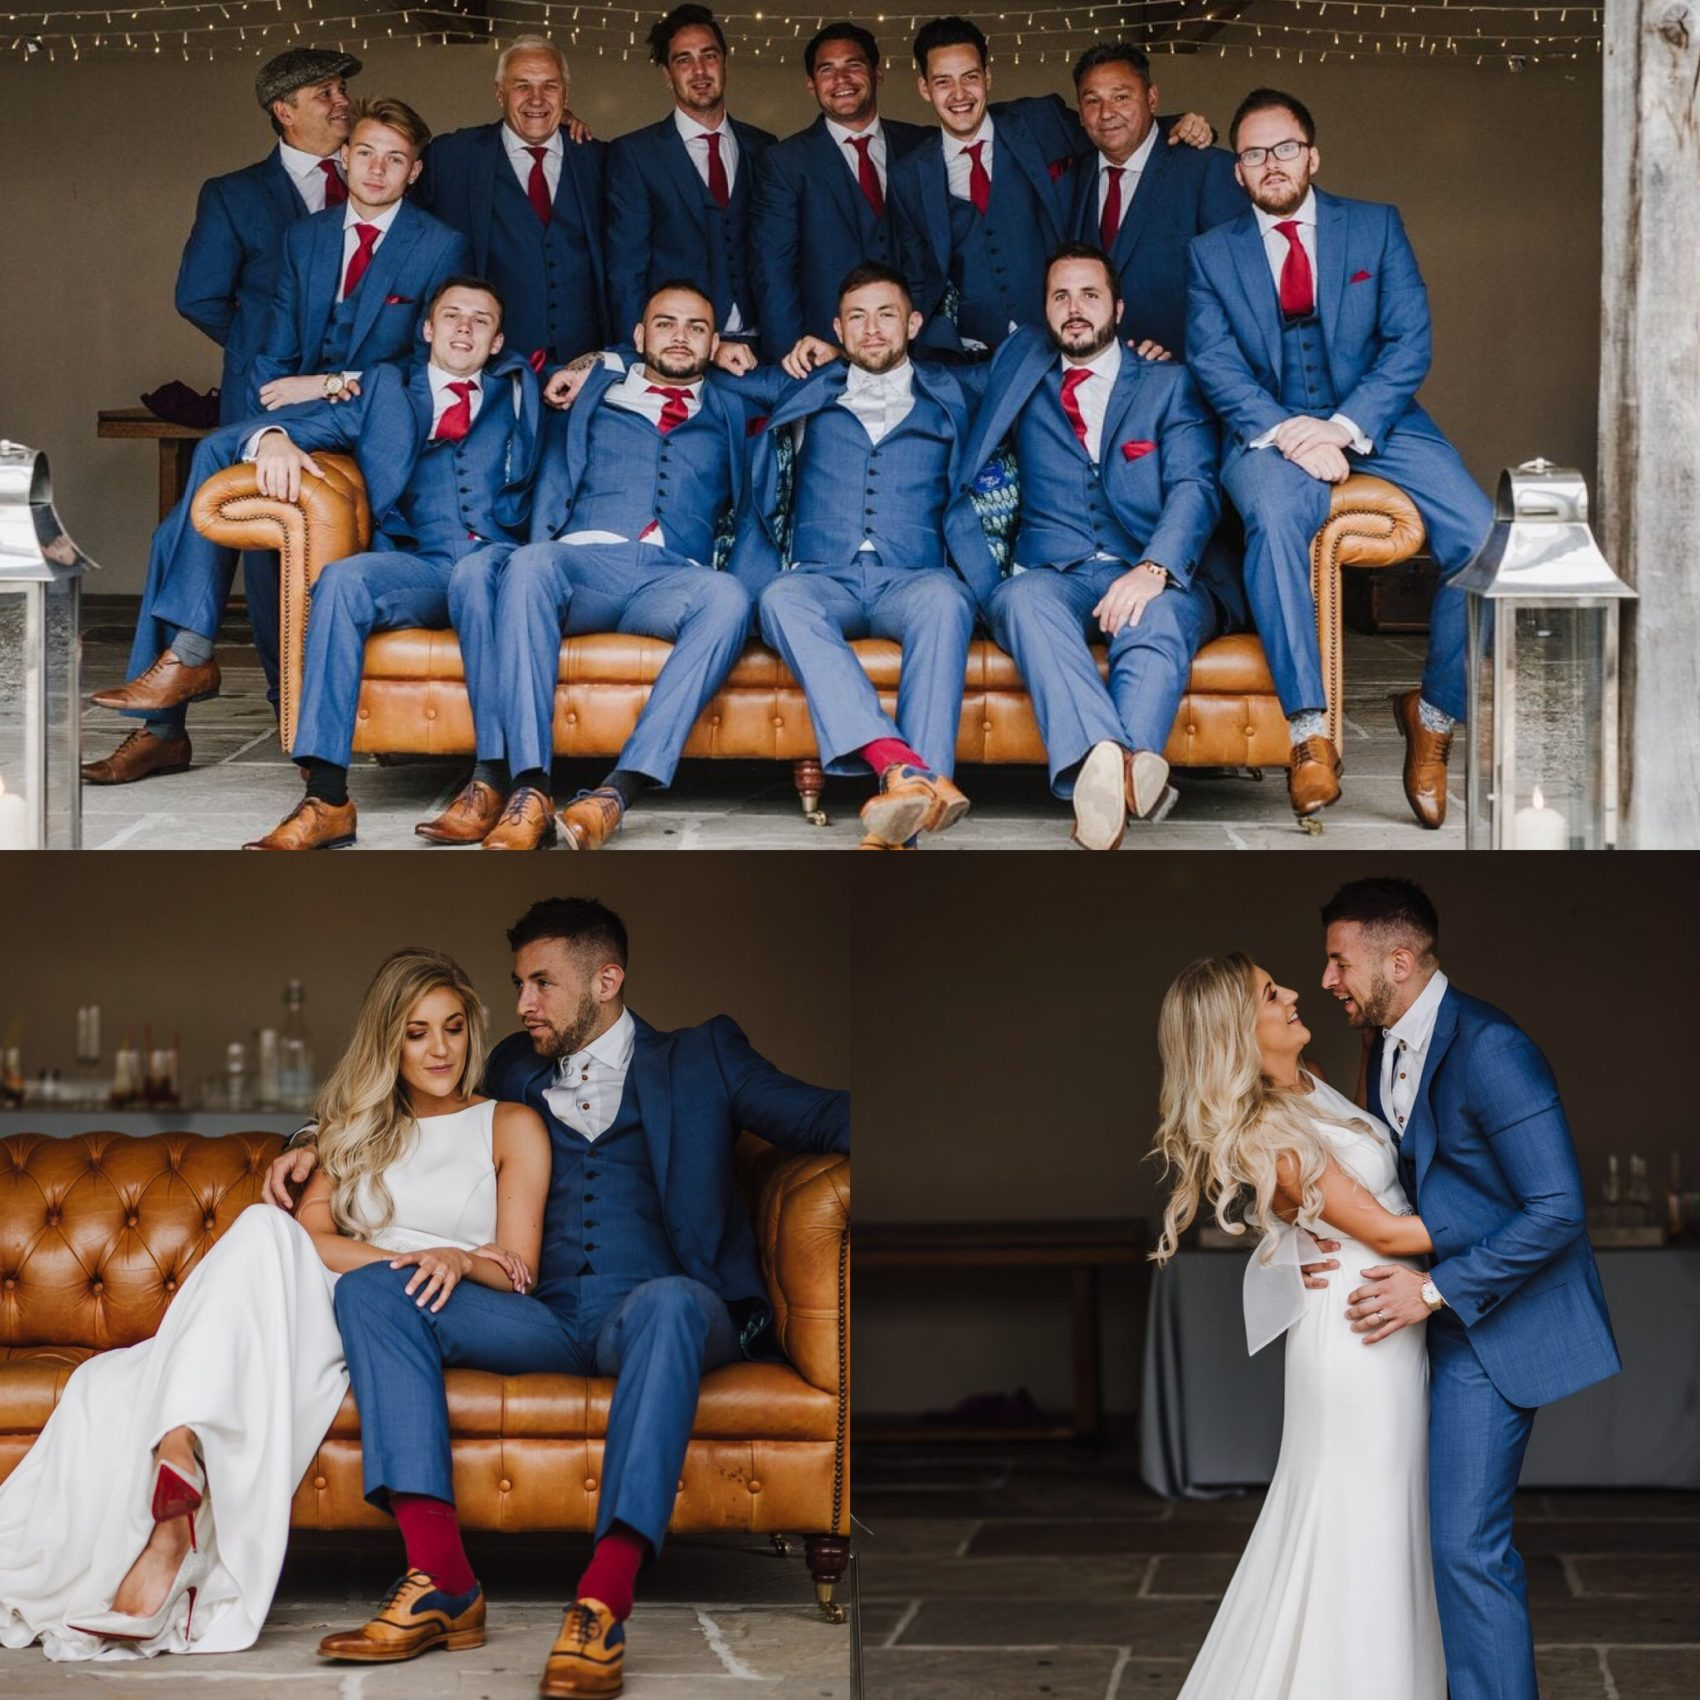 Wedding party, bride & groom, vintage, sofa, red, navy, gangster, wedding, white dress, happy, posing, ever after, lower grenofen,